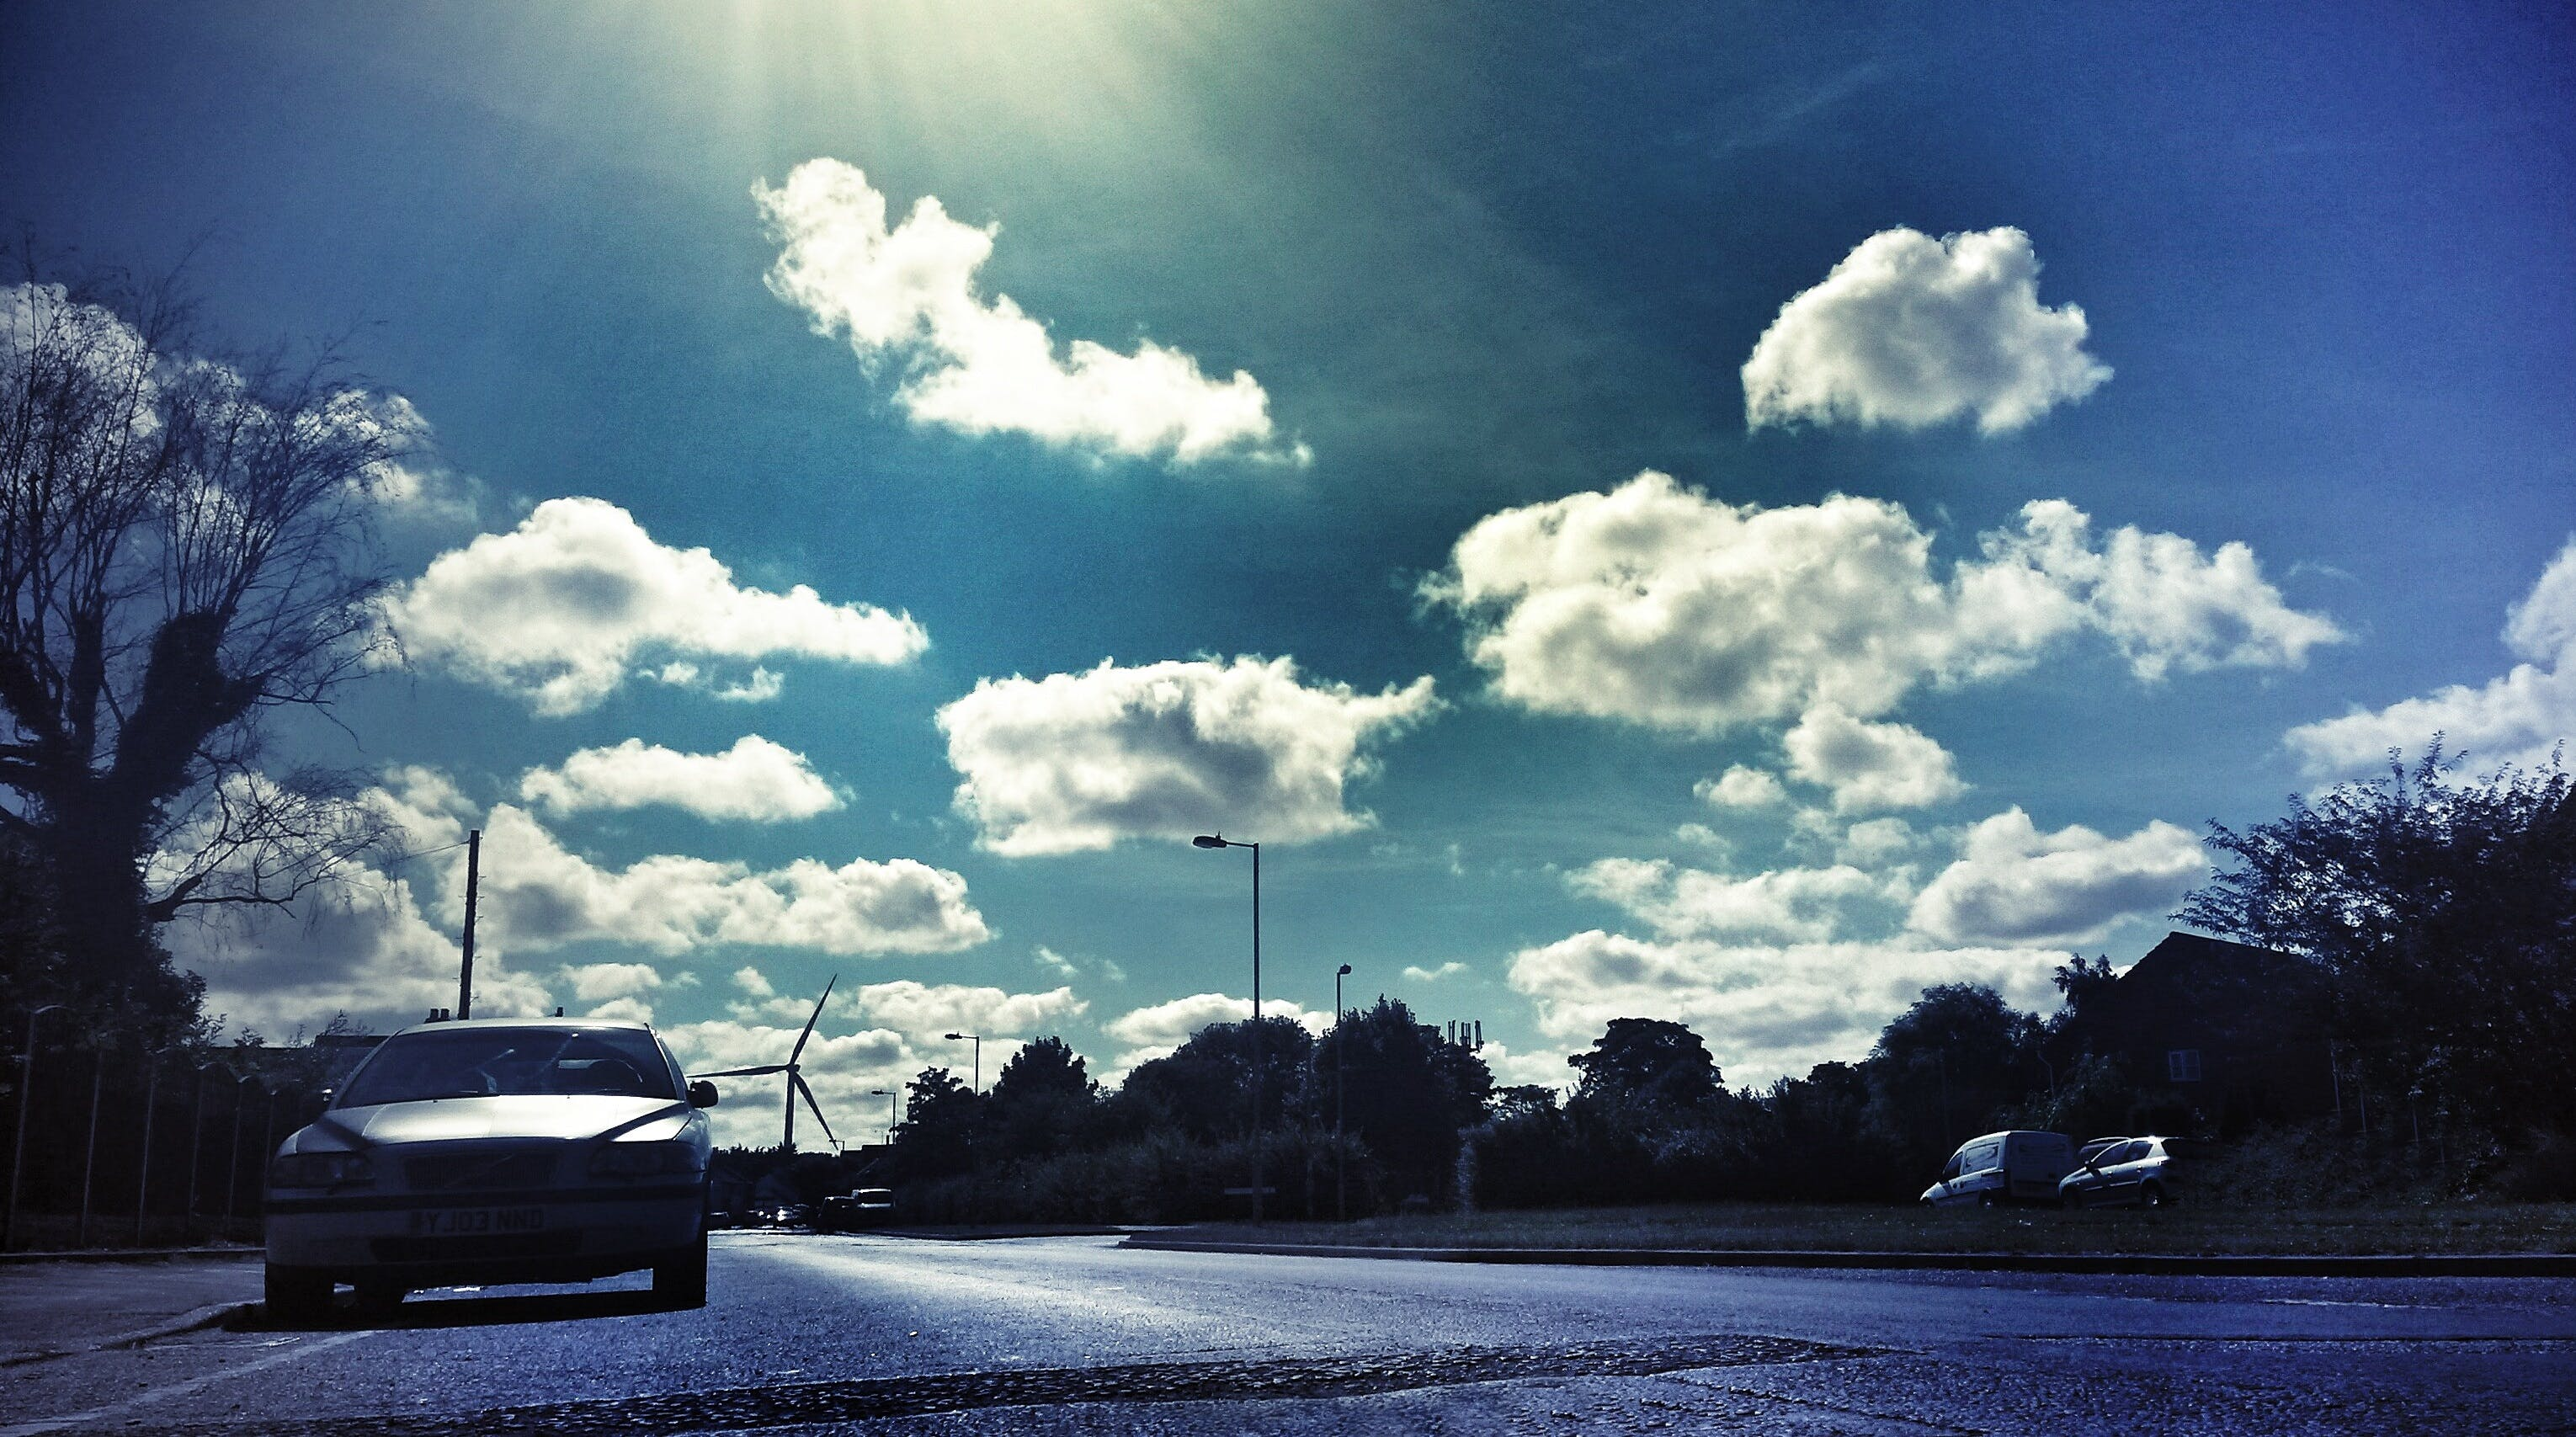 Free stock photo of road, sky, clouds, street